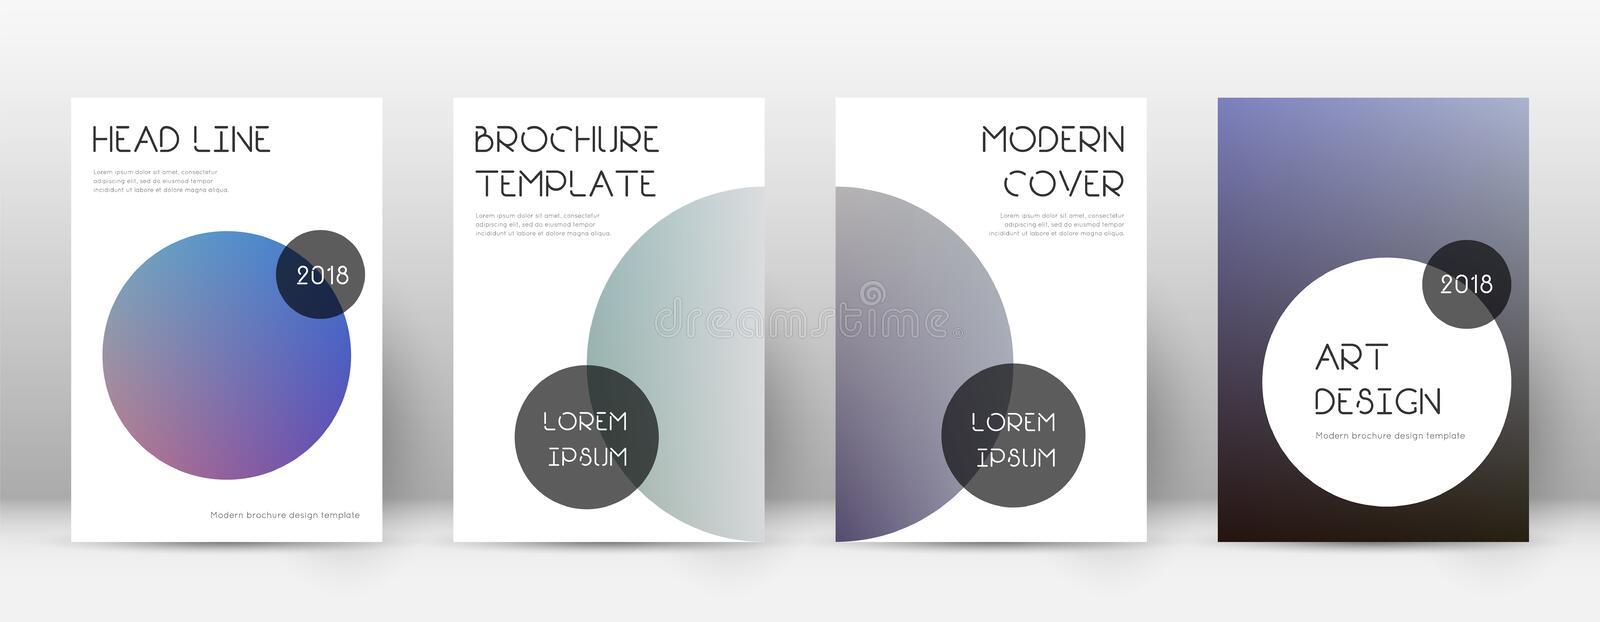 Flyer layout. Trendy immaculate template for Brochure, Annual Report, Magazine, Poster, Corporate Presentation, Portfolio, Flyer. Beauteous color transition royalty free illustration